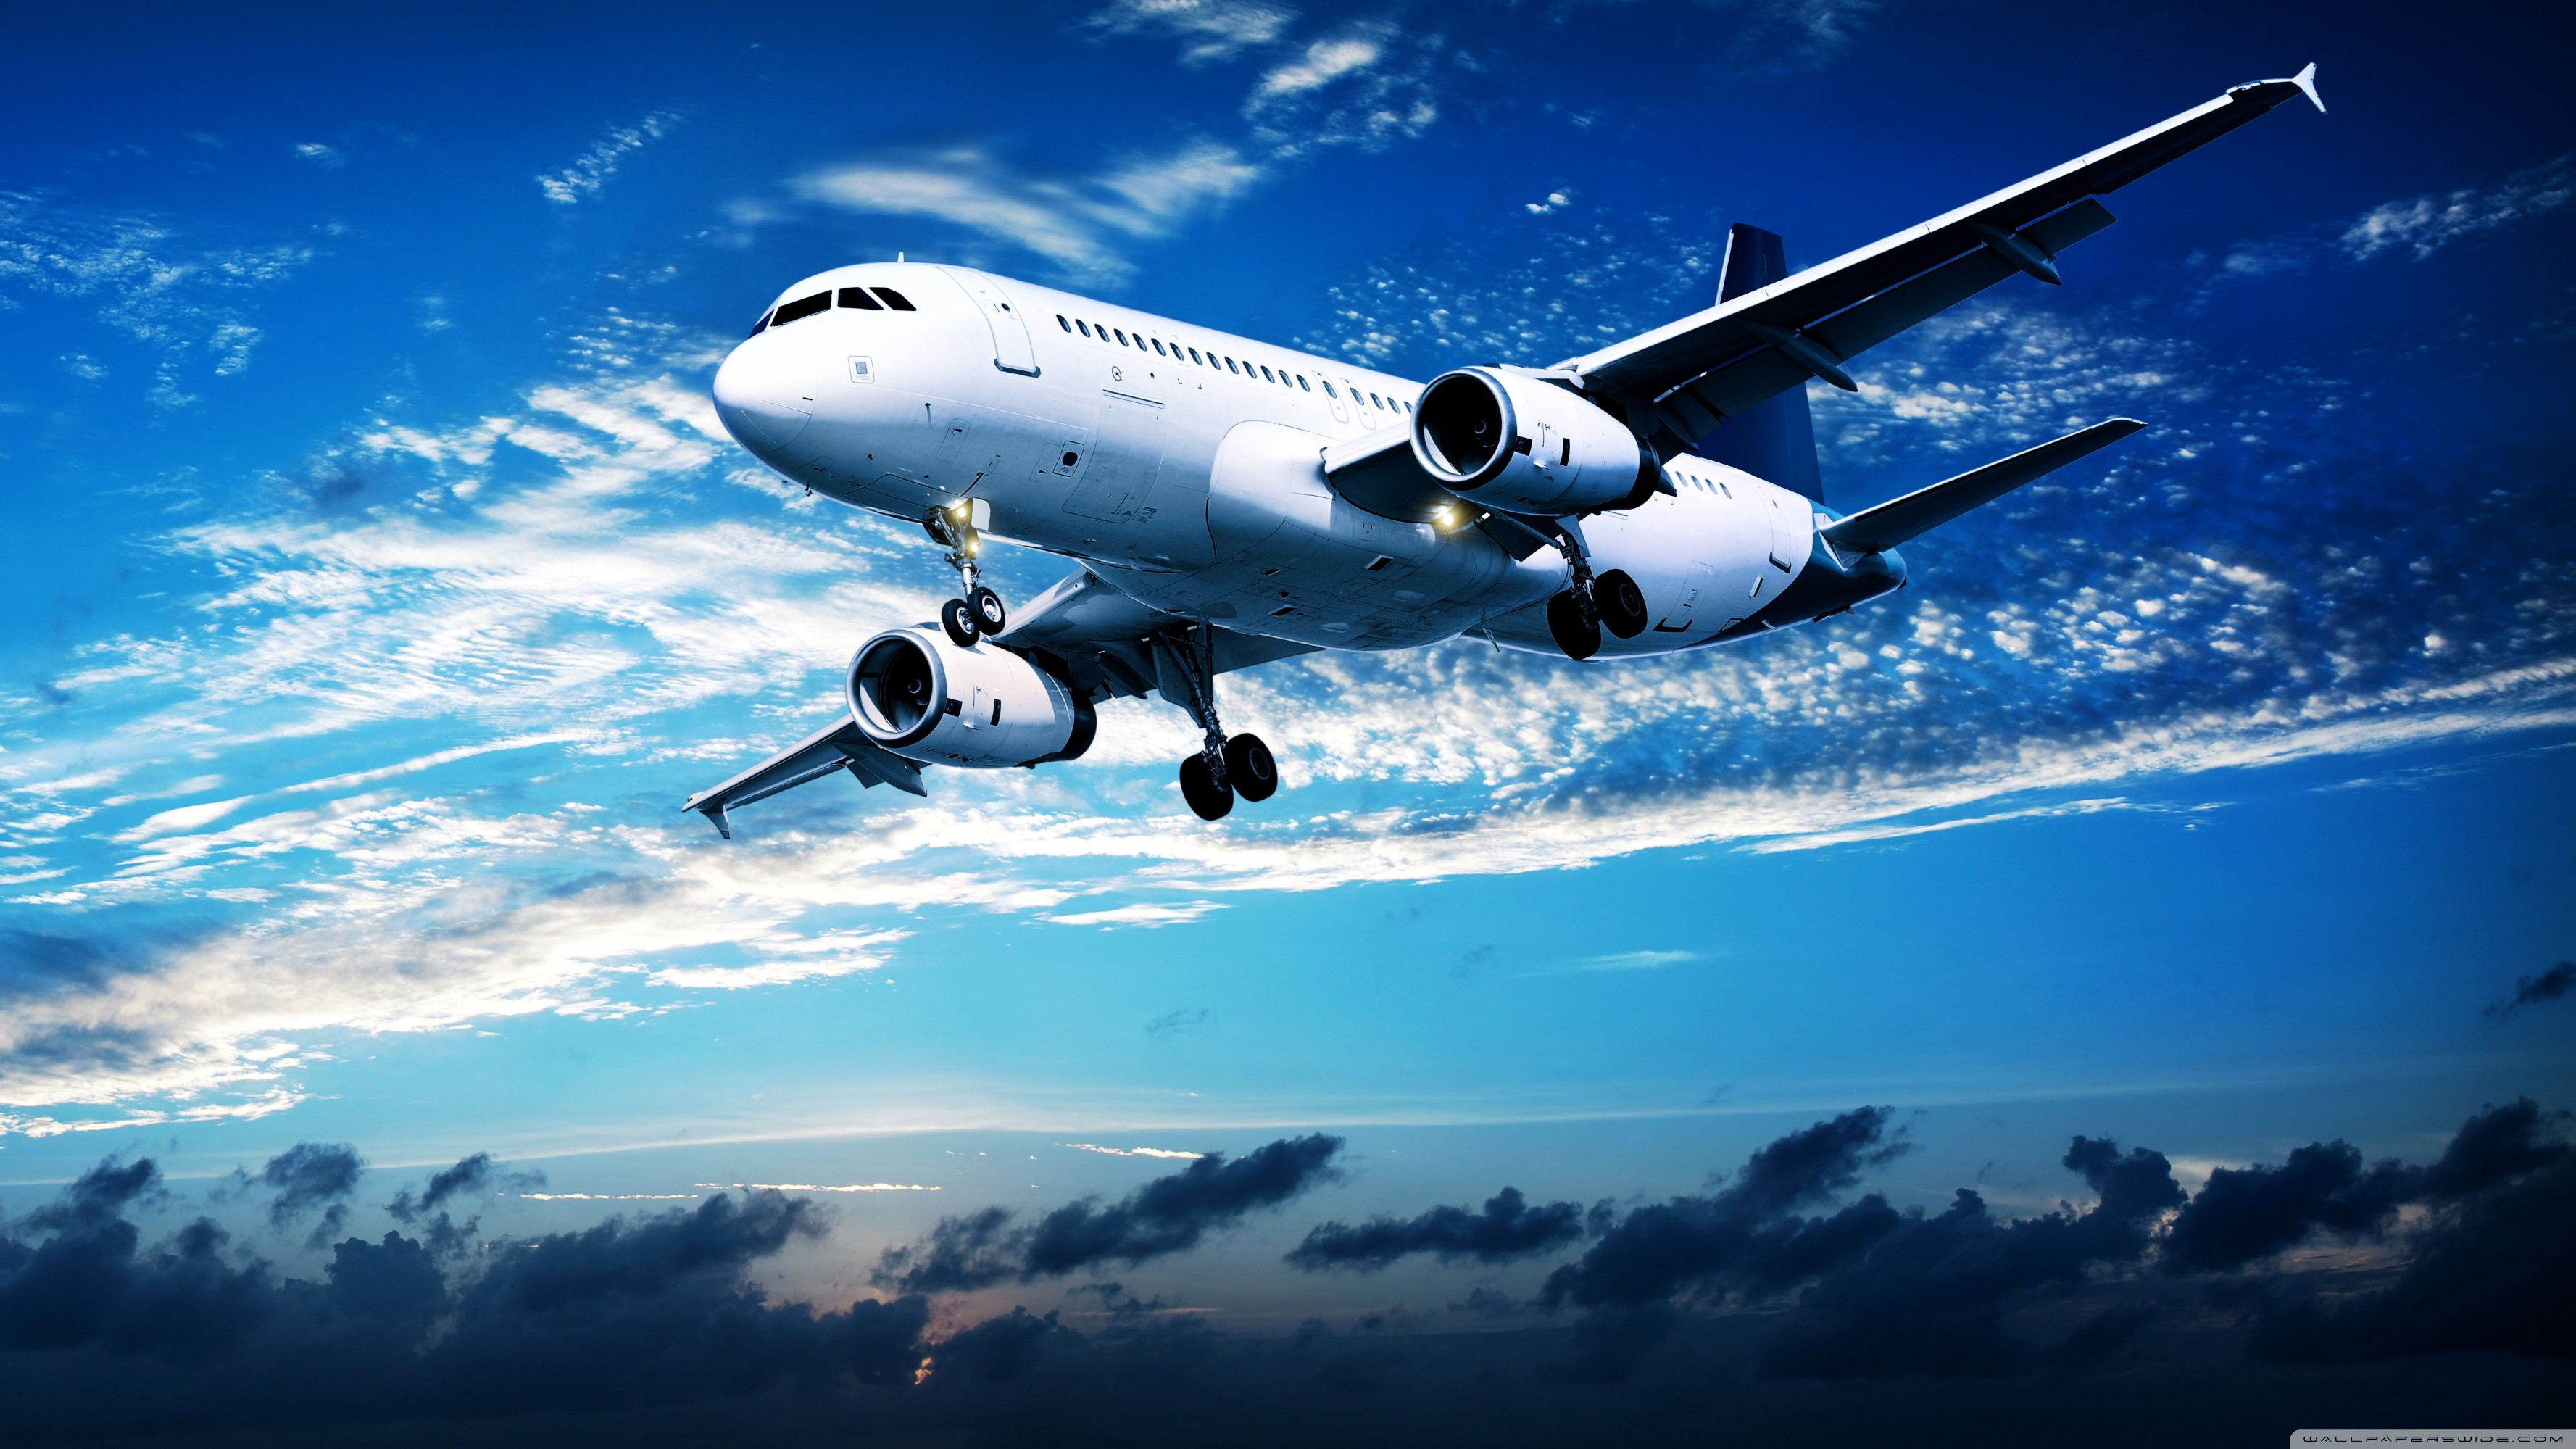 Airplane Wallpaper Hd 75 Images